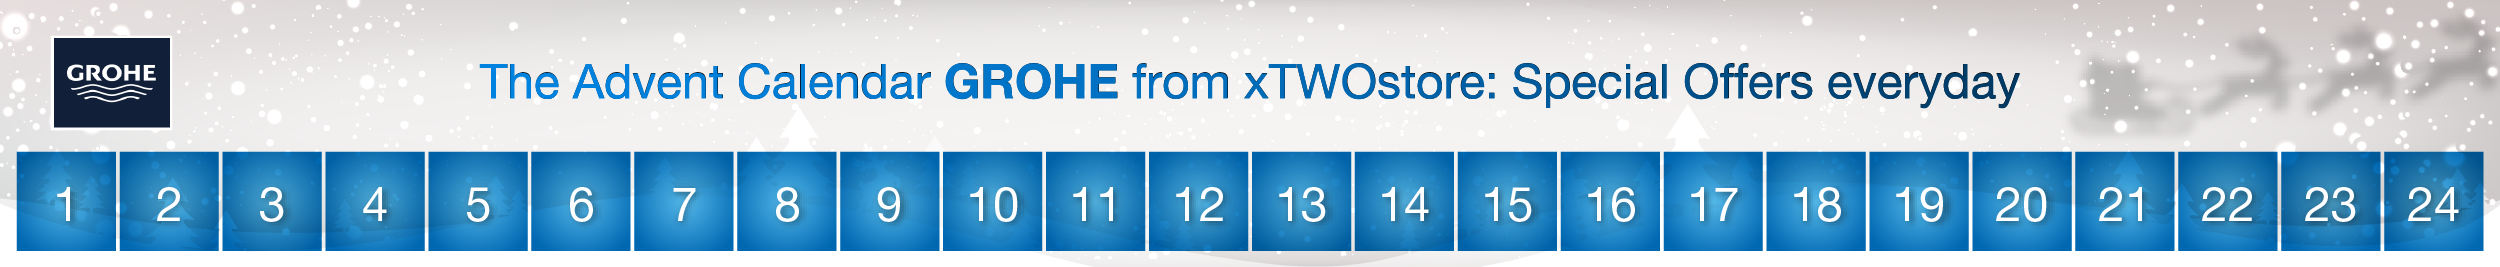 GROHE Advent Calendar at xTWOstore